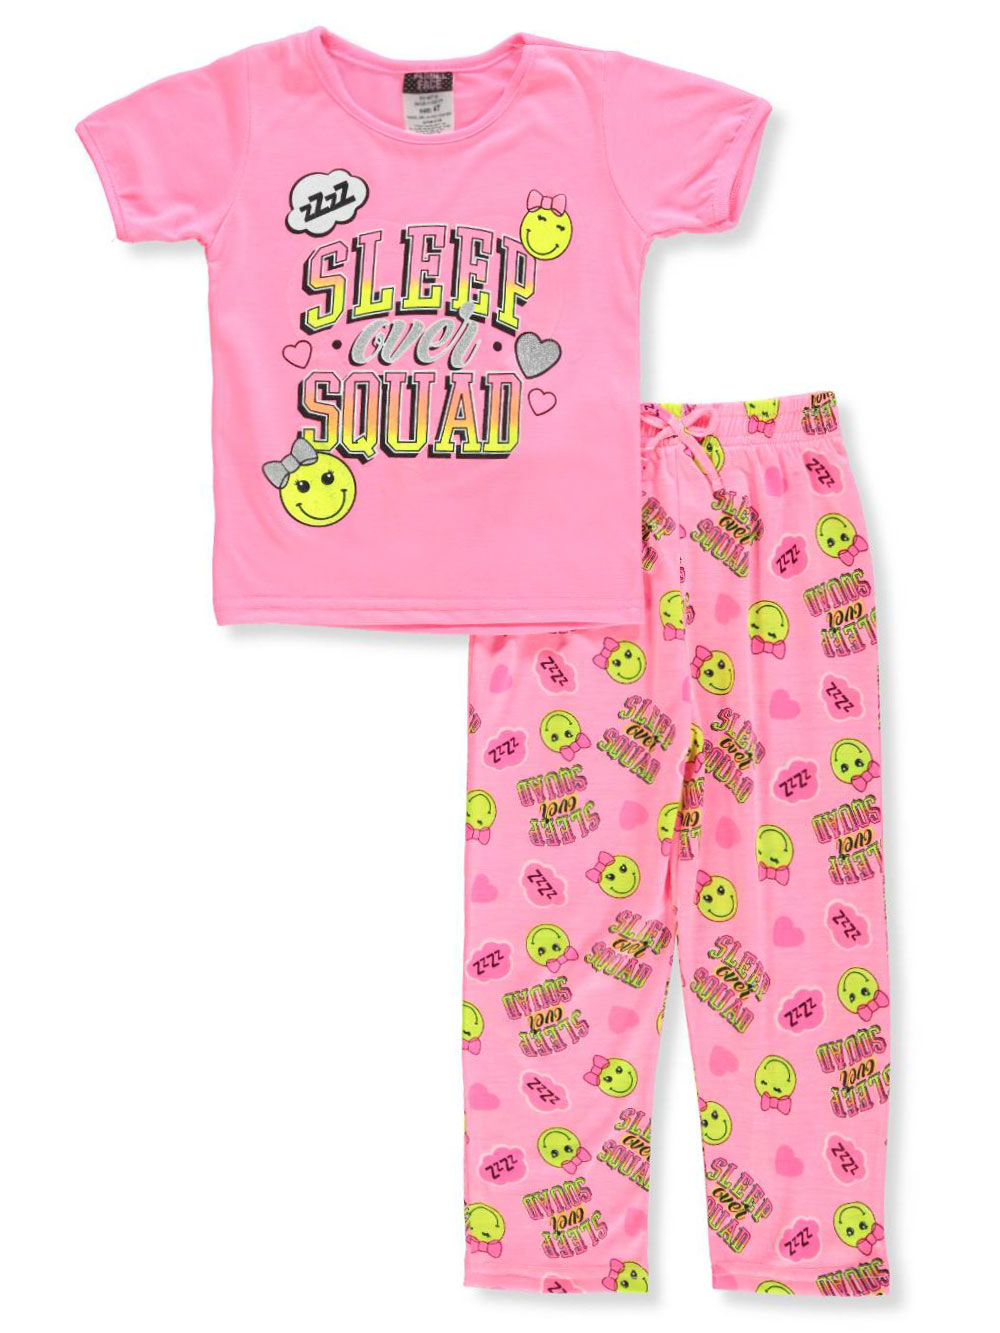 Size 3t Pajamas for Girls